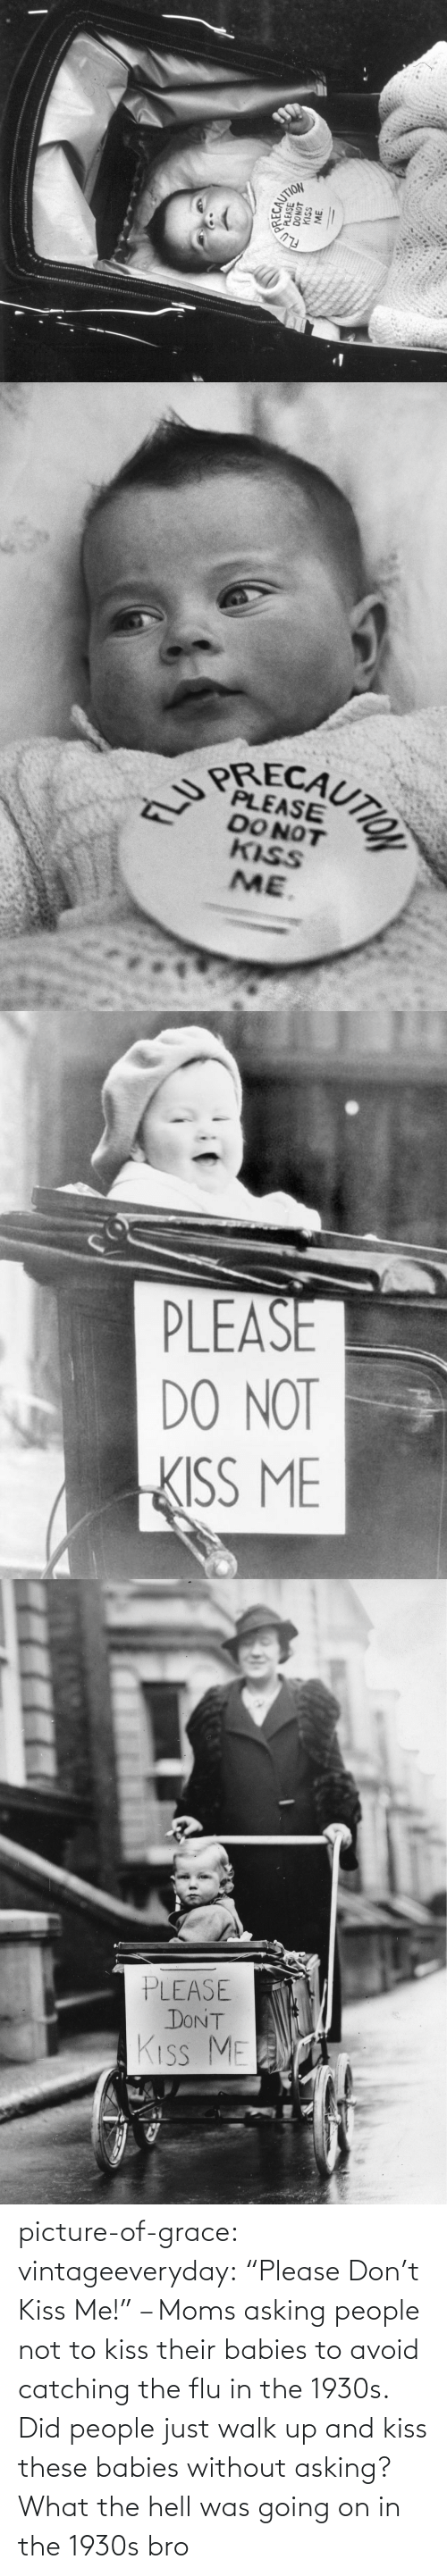 "html: picture-of-grace:  vintageeveryday: ""Please Don't Kiss Me!"" – Moms asking people not to kiss their babies to avoid catching the flu in the 1930s.   Did people just walk up and kiss these babies without asking? What the hell was going on in the 1930s bro"